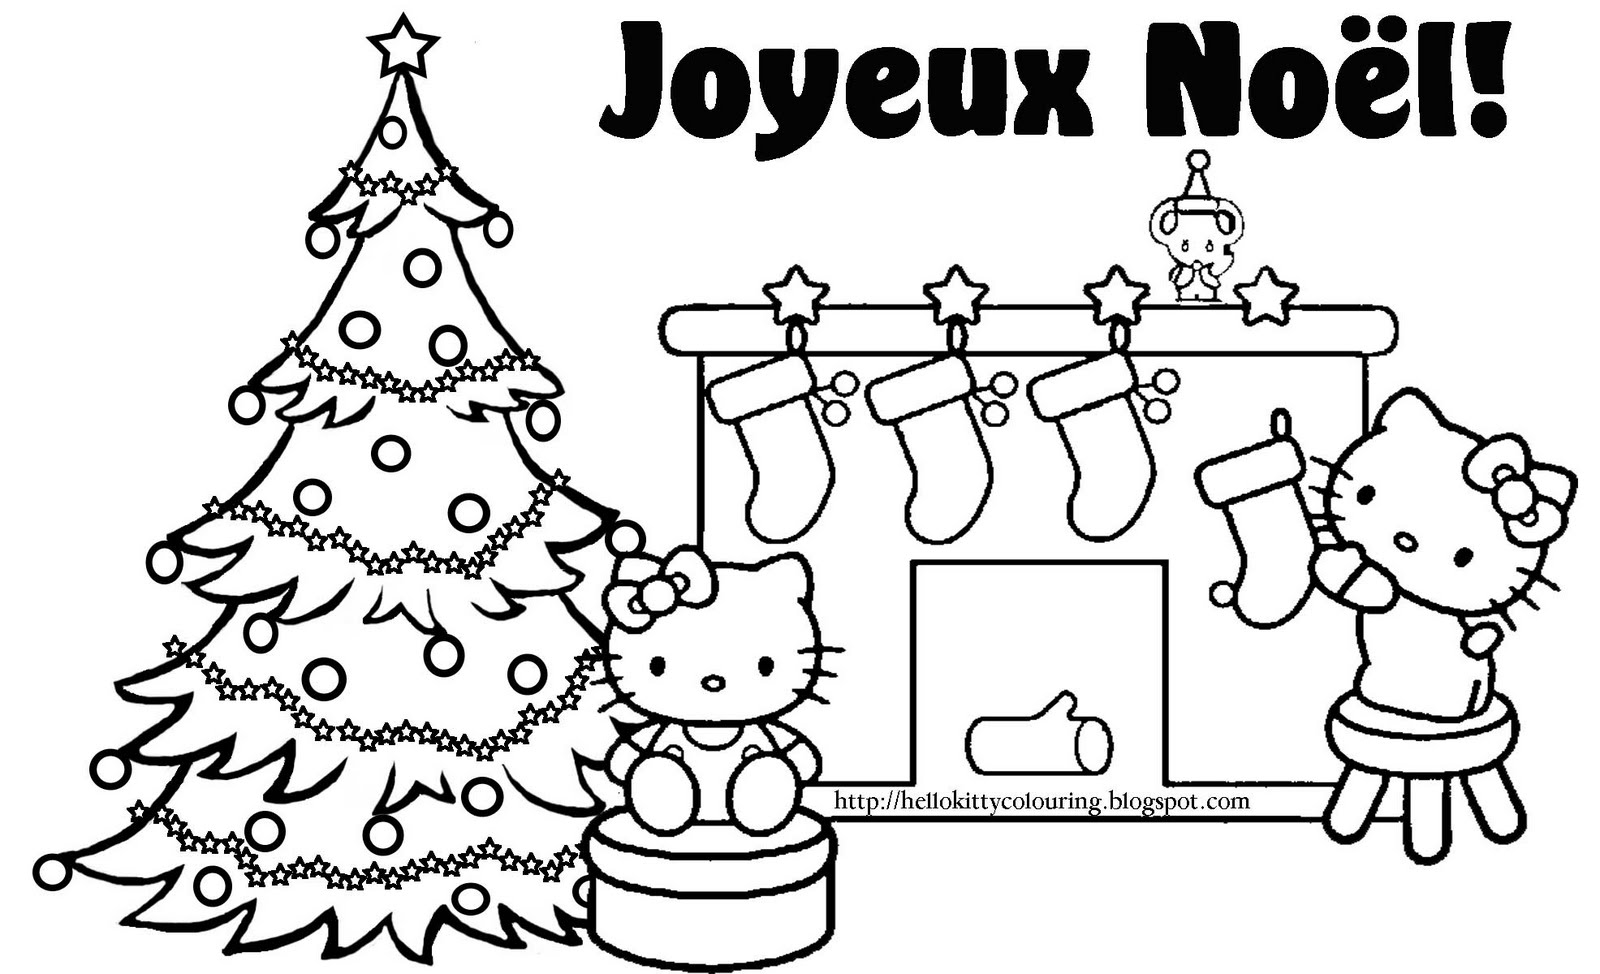 19 dessins de coloriage hello kitty noel imprimer - Coloriage hello kitty a colorier ...